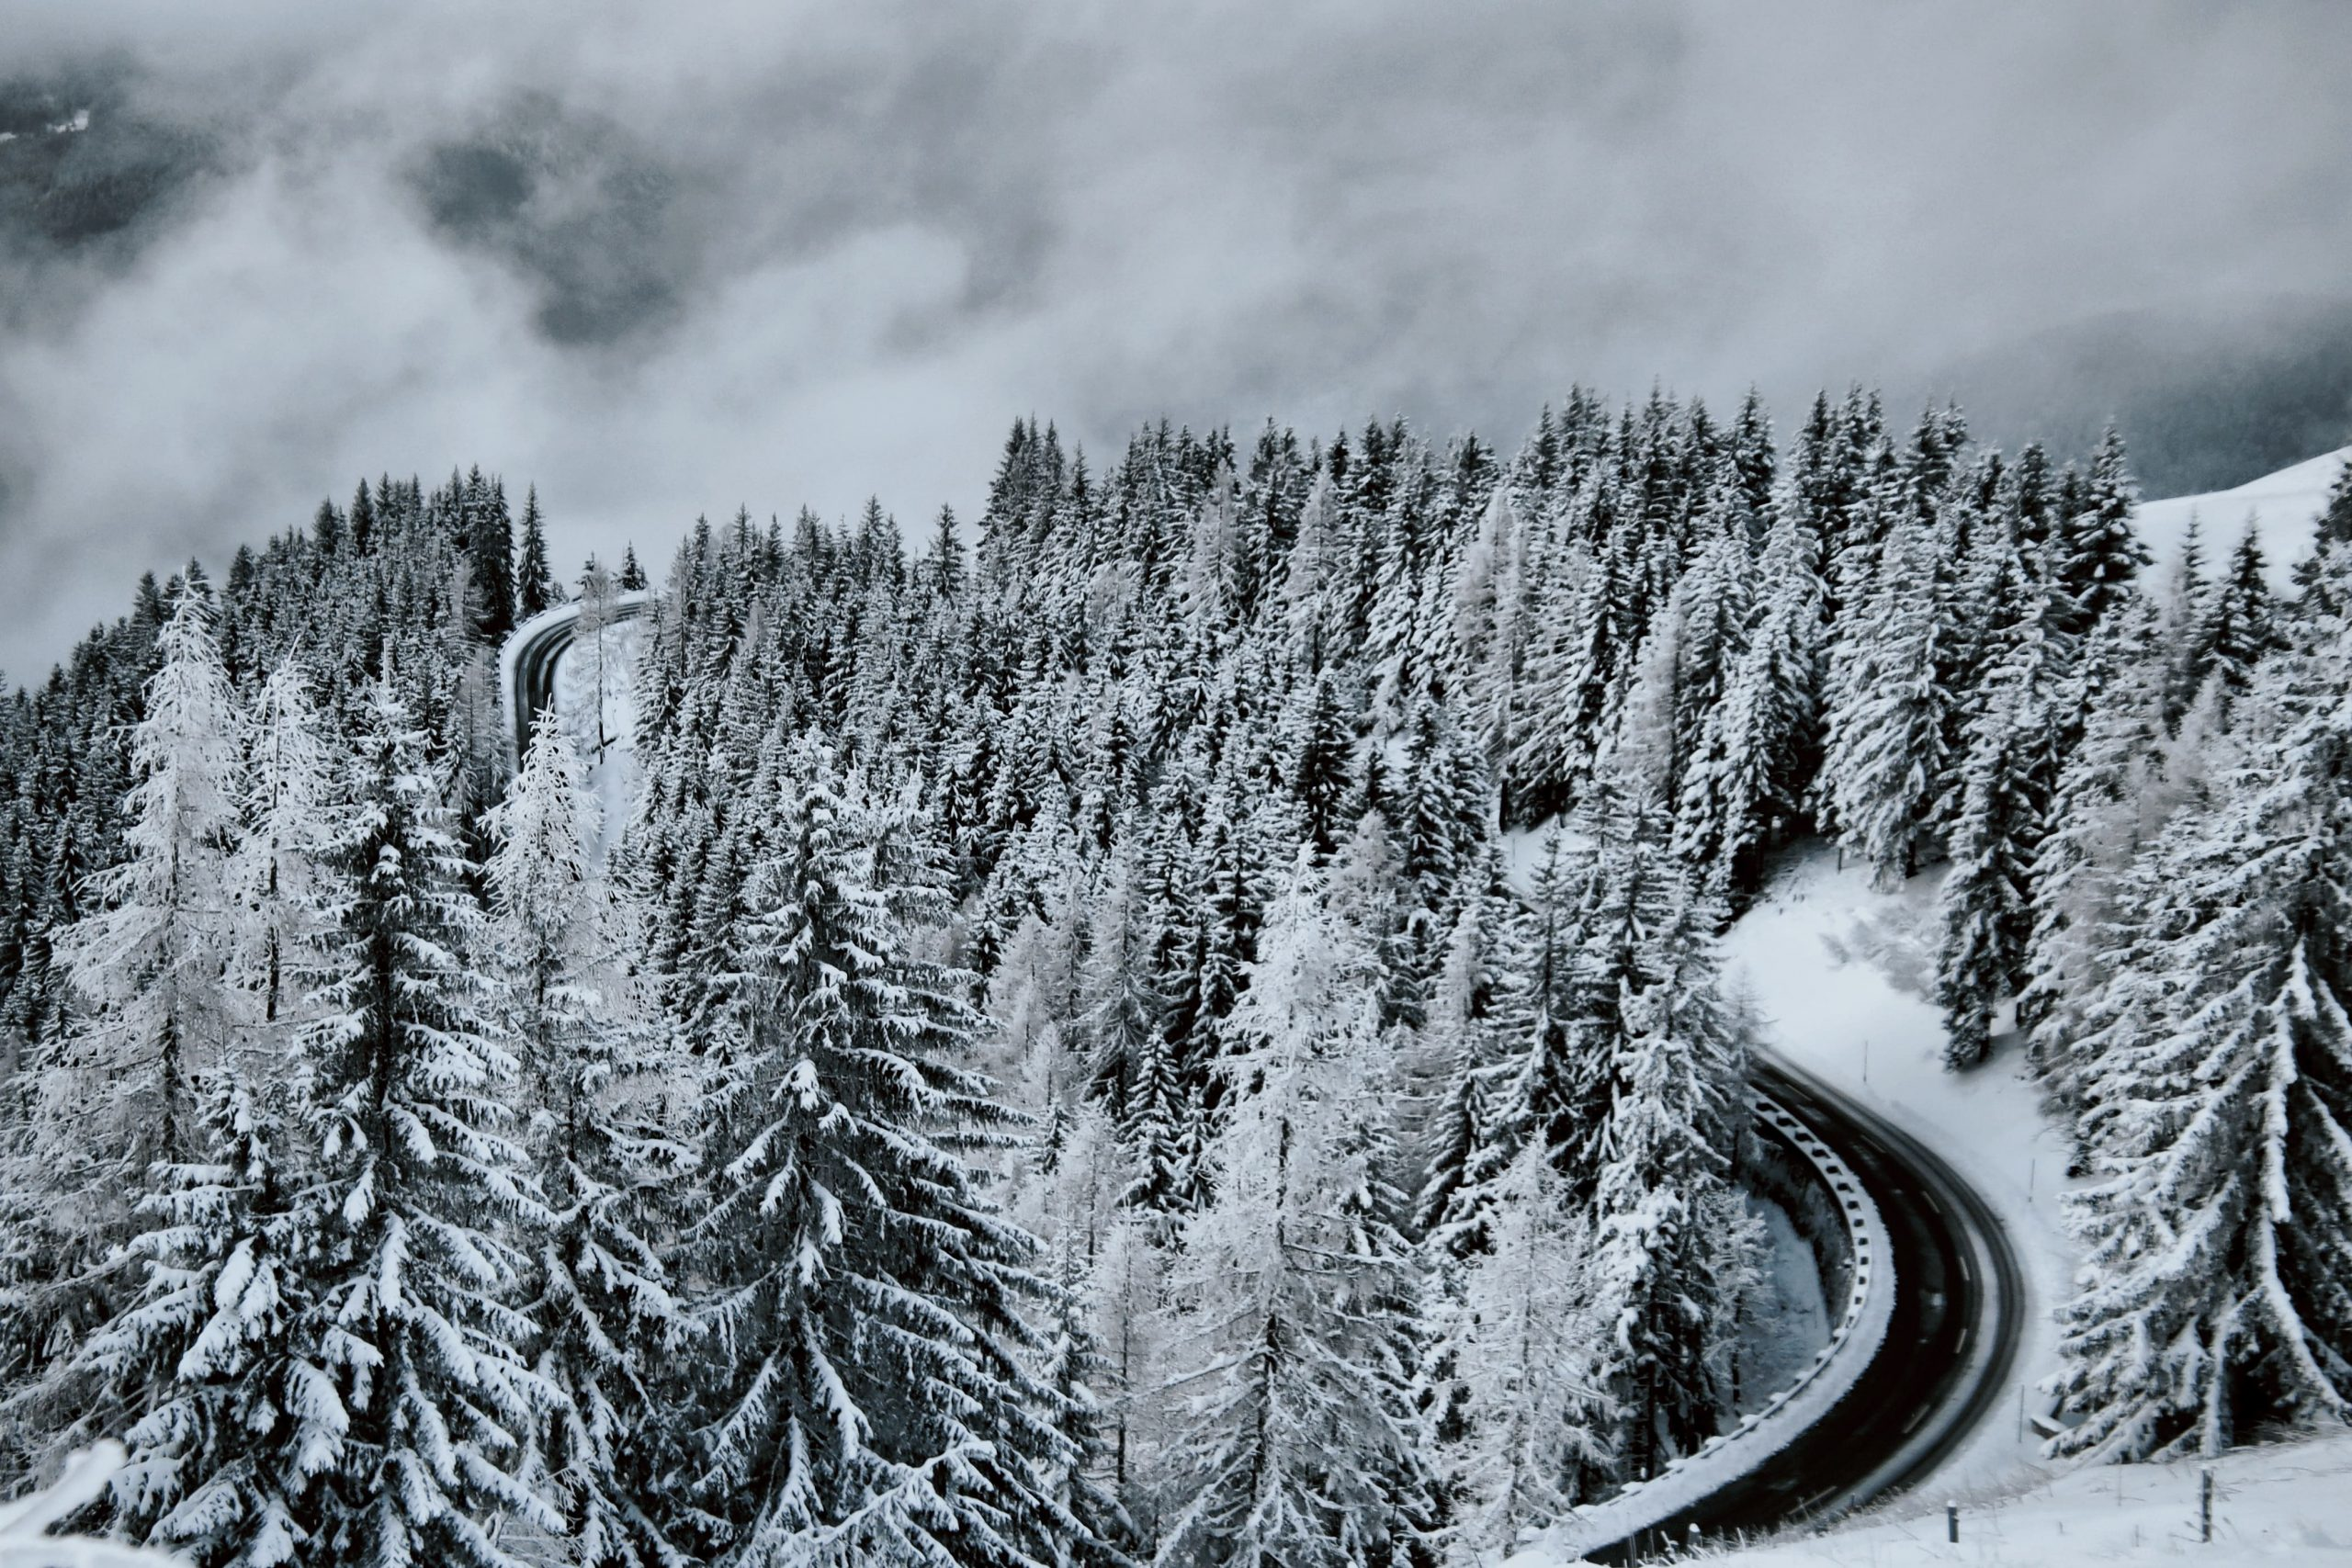 Mountains covered in snow - picture taken with Samyang MF 14mm F2.8 MK2